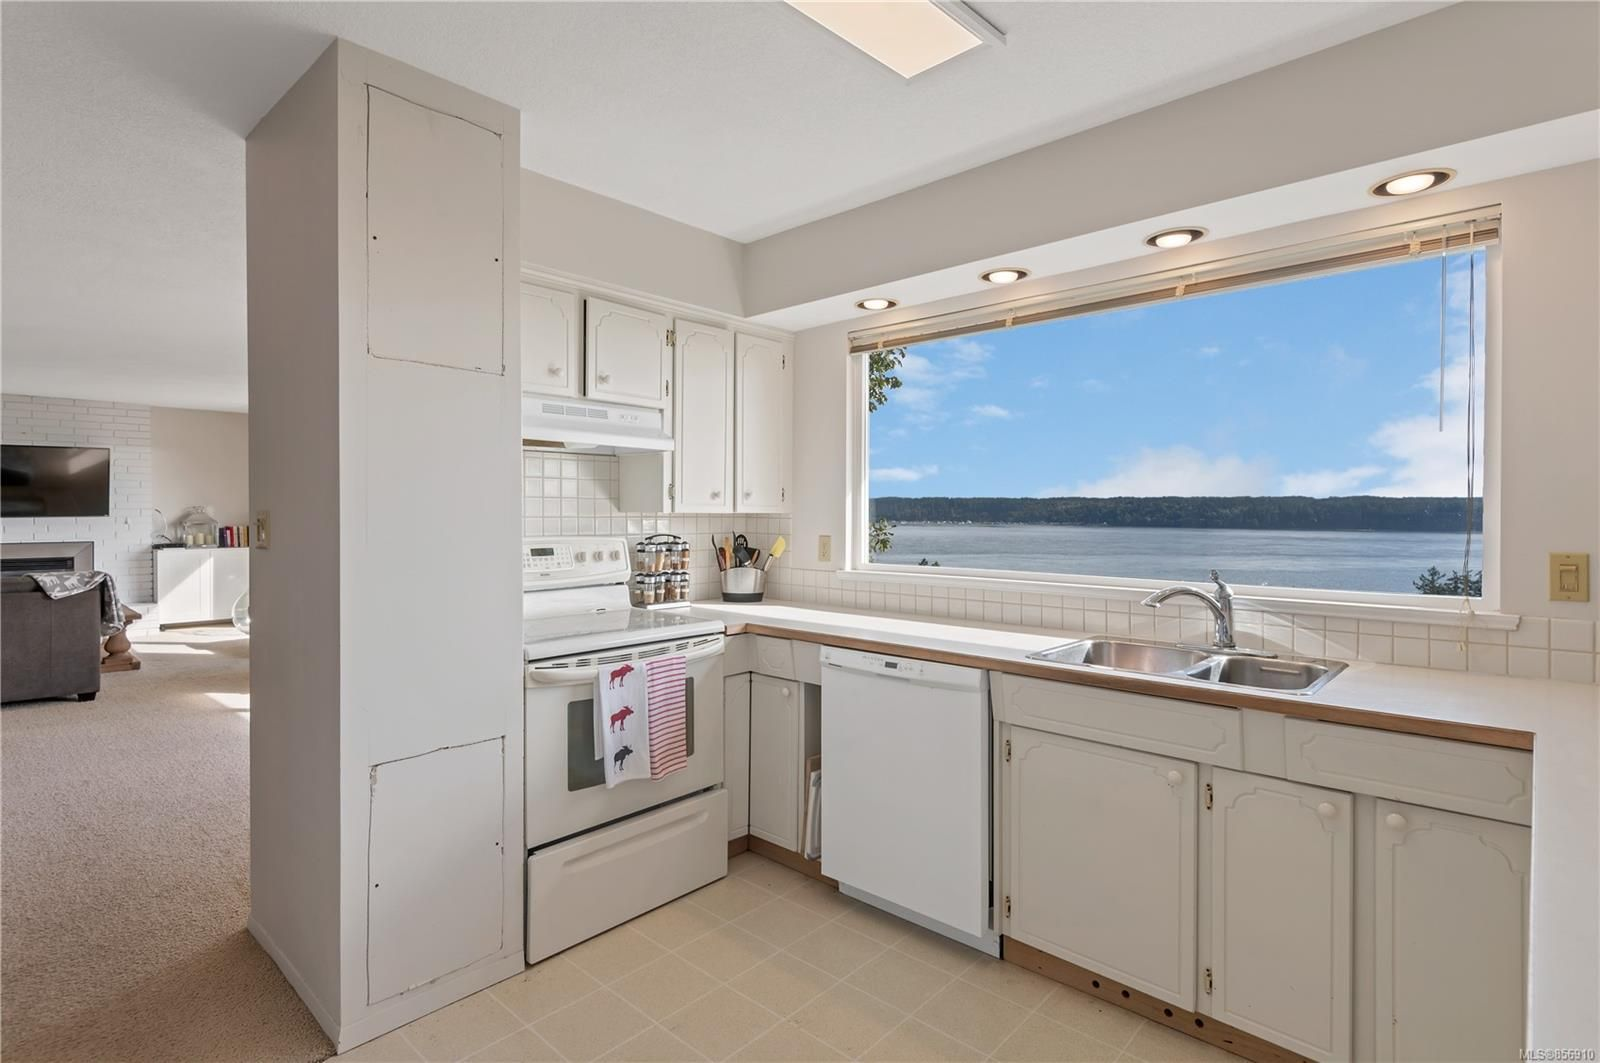 Photo 18: Photos: 215 S Alder St in : CR Campbell River Central House for sale (Campbell River)  : MLS®# 856910